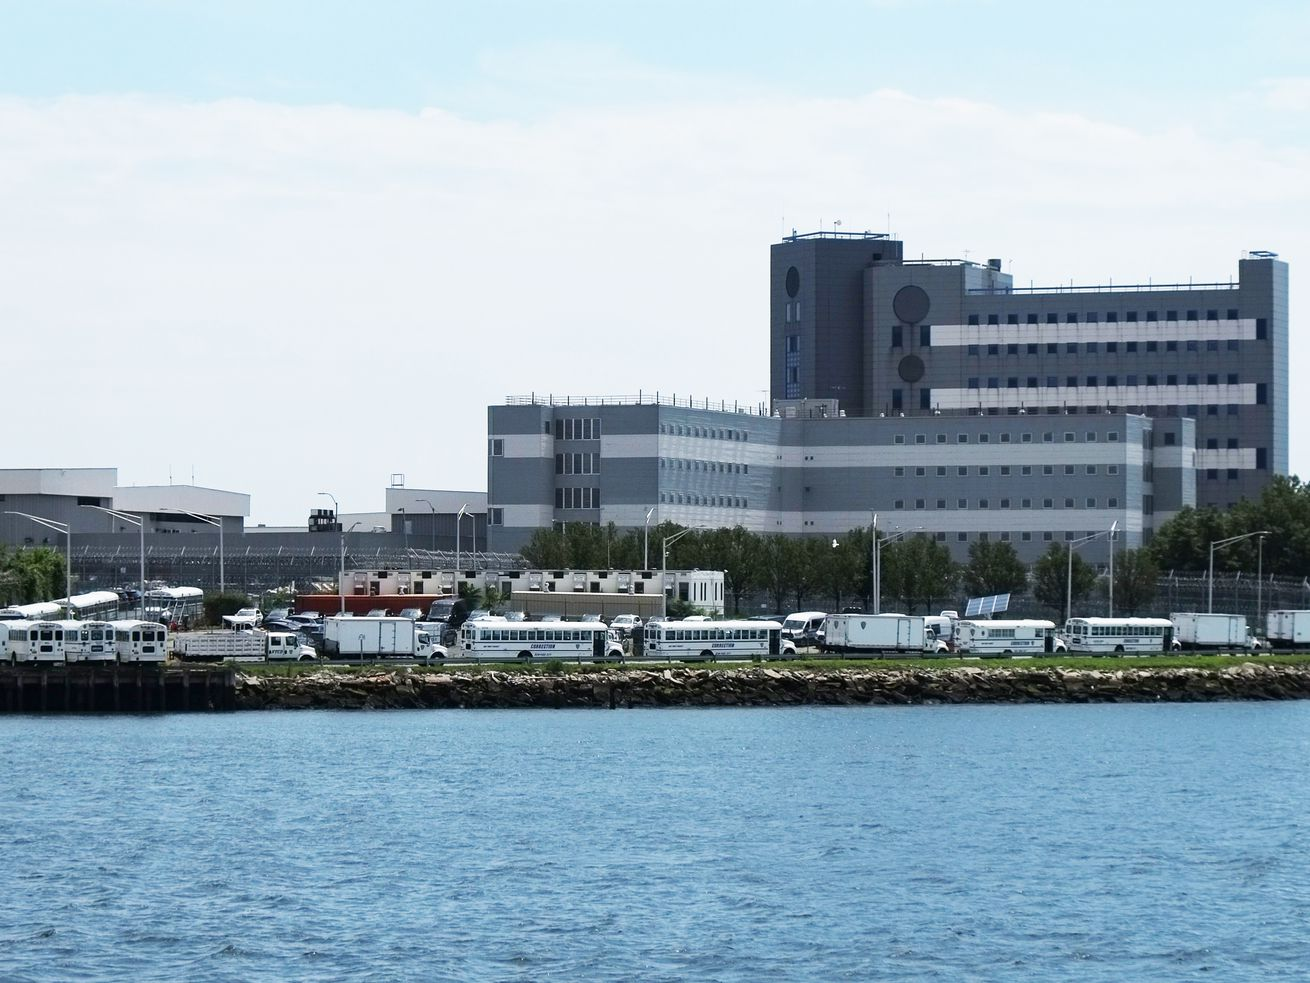 A high-rise jail on Rikers Island with white Department of Correction buses lined in front of it.